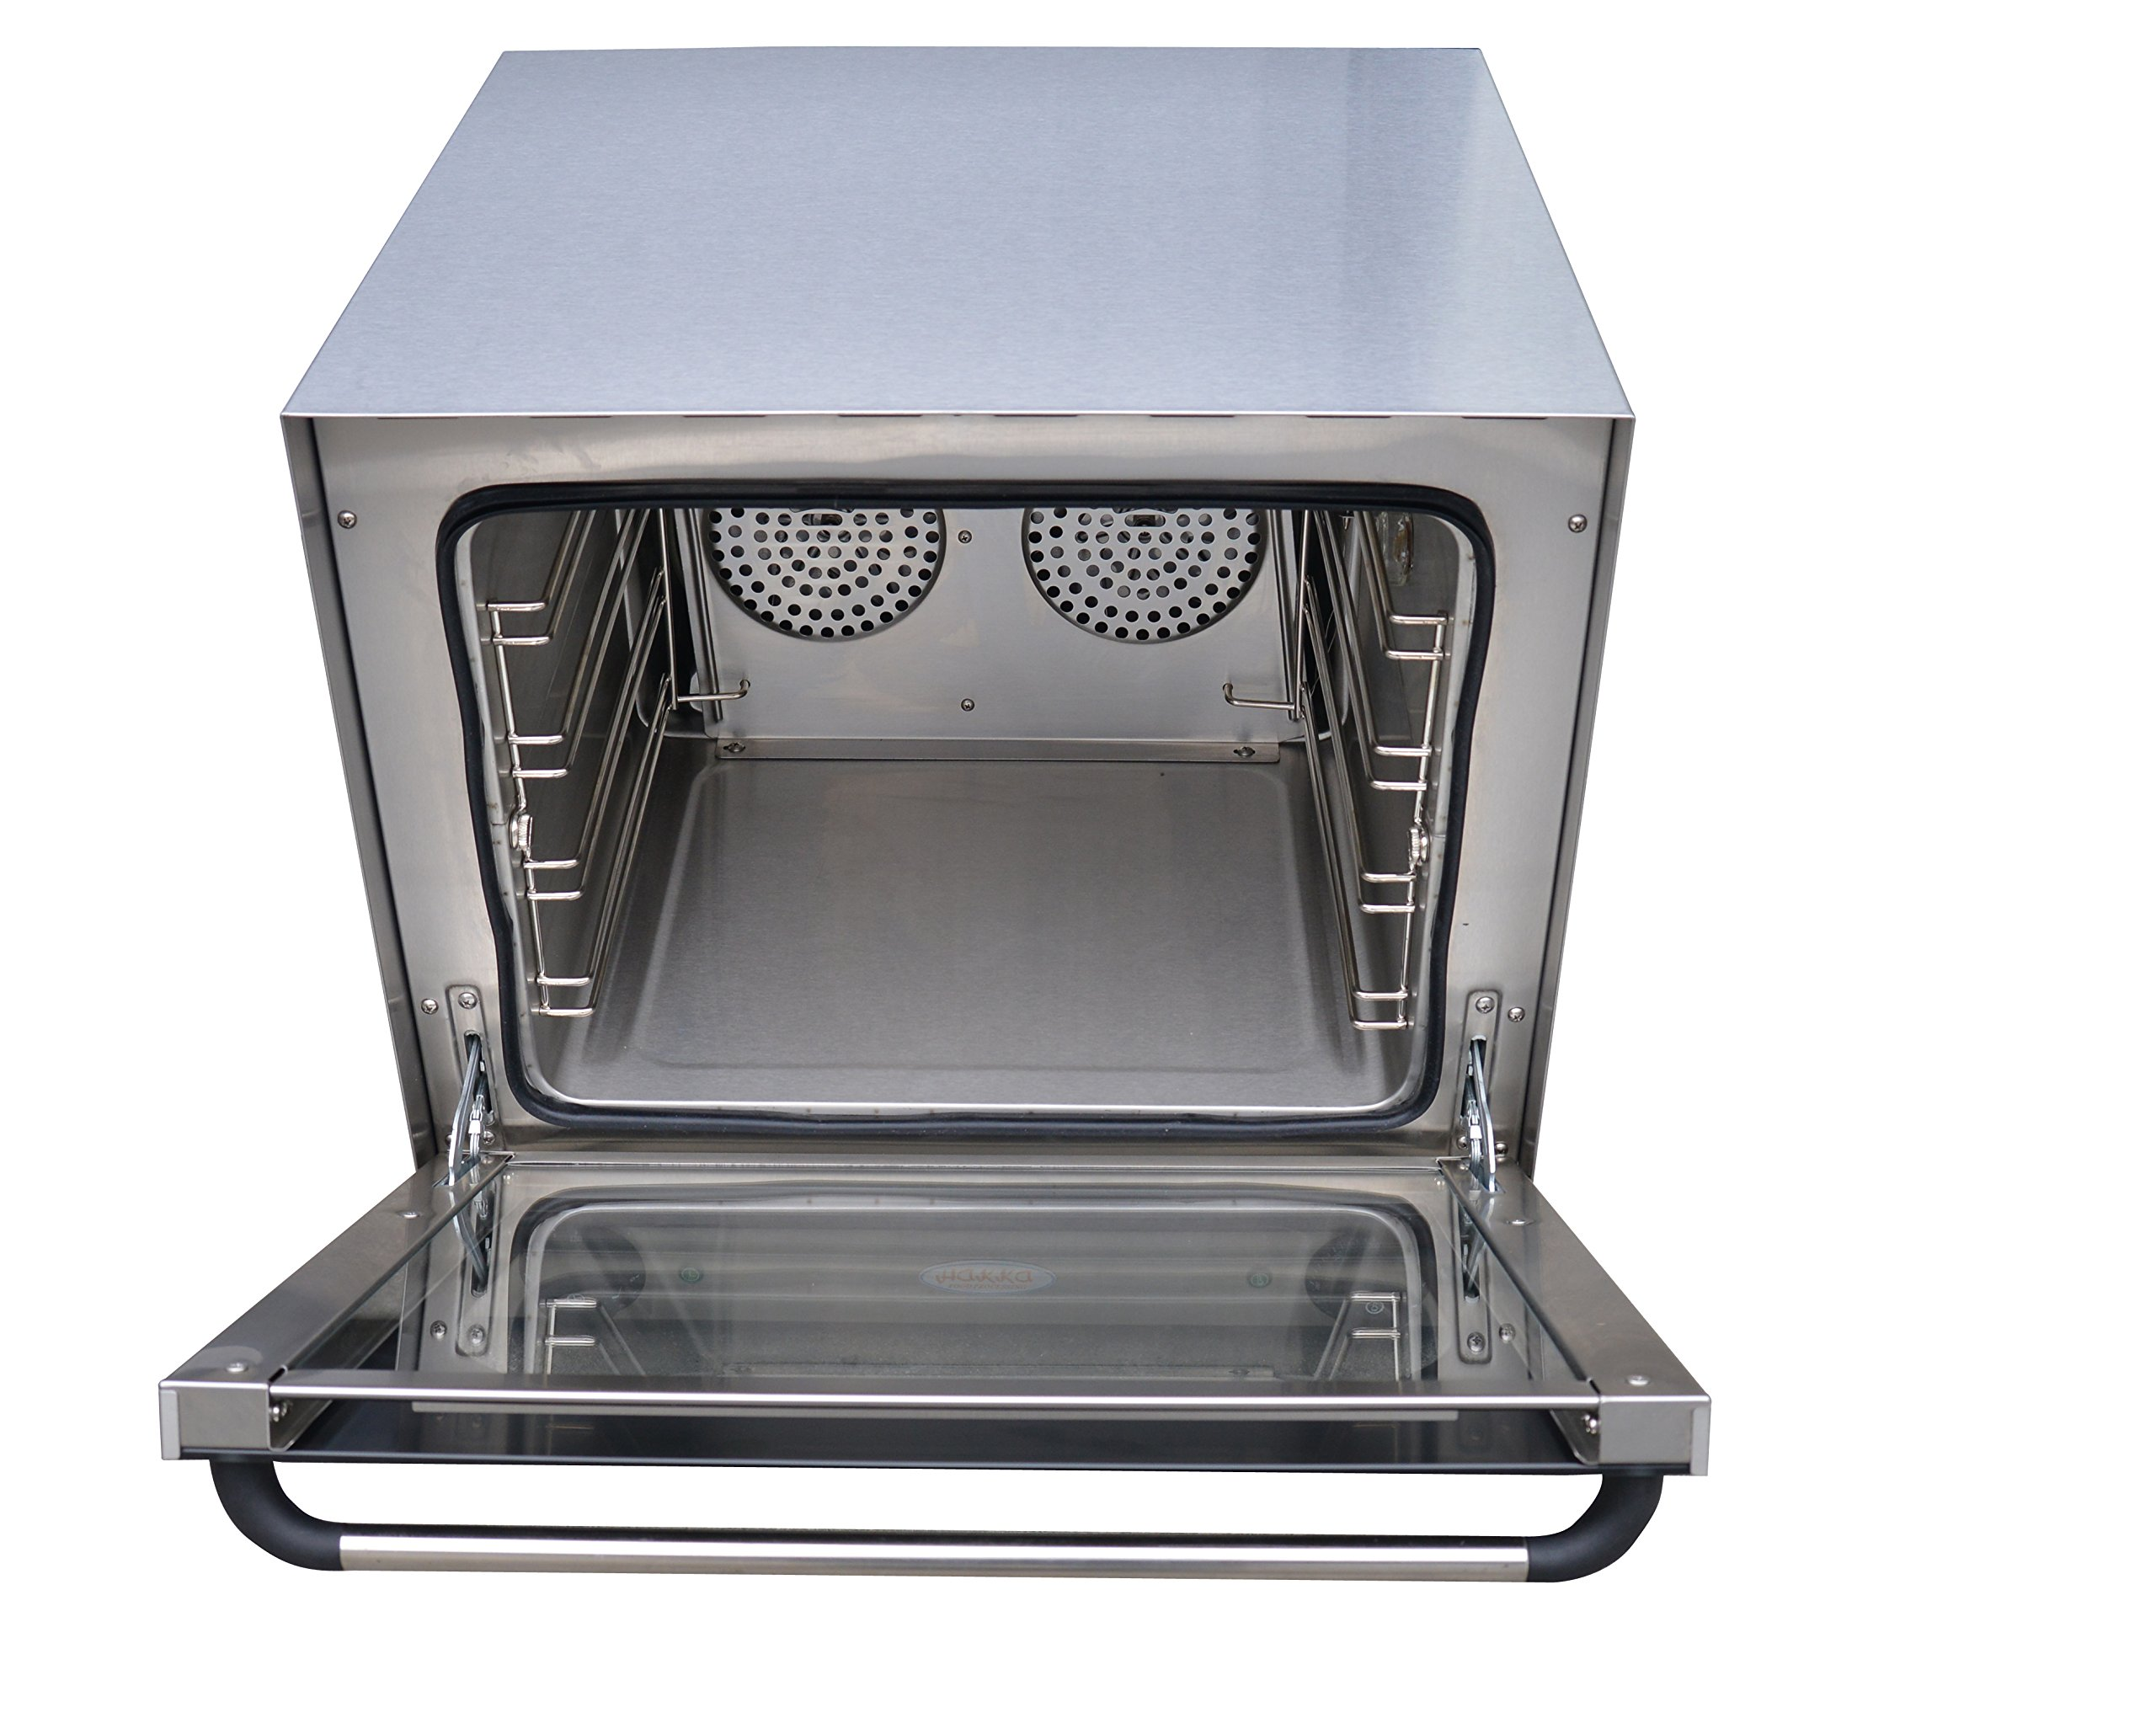 Hakka Commercial Convection Counter Top Oven with Steaming Function (220V/60Hz) by HAKKA (Image #3)